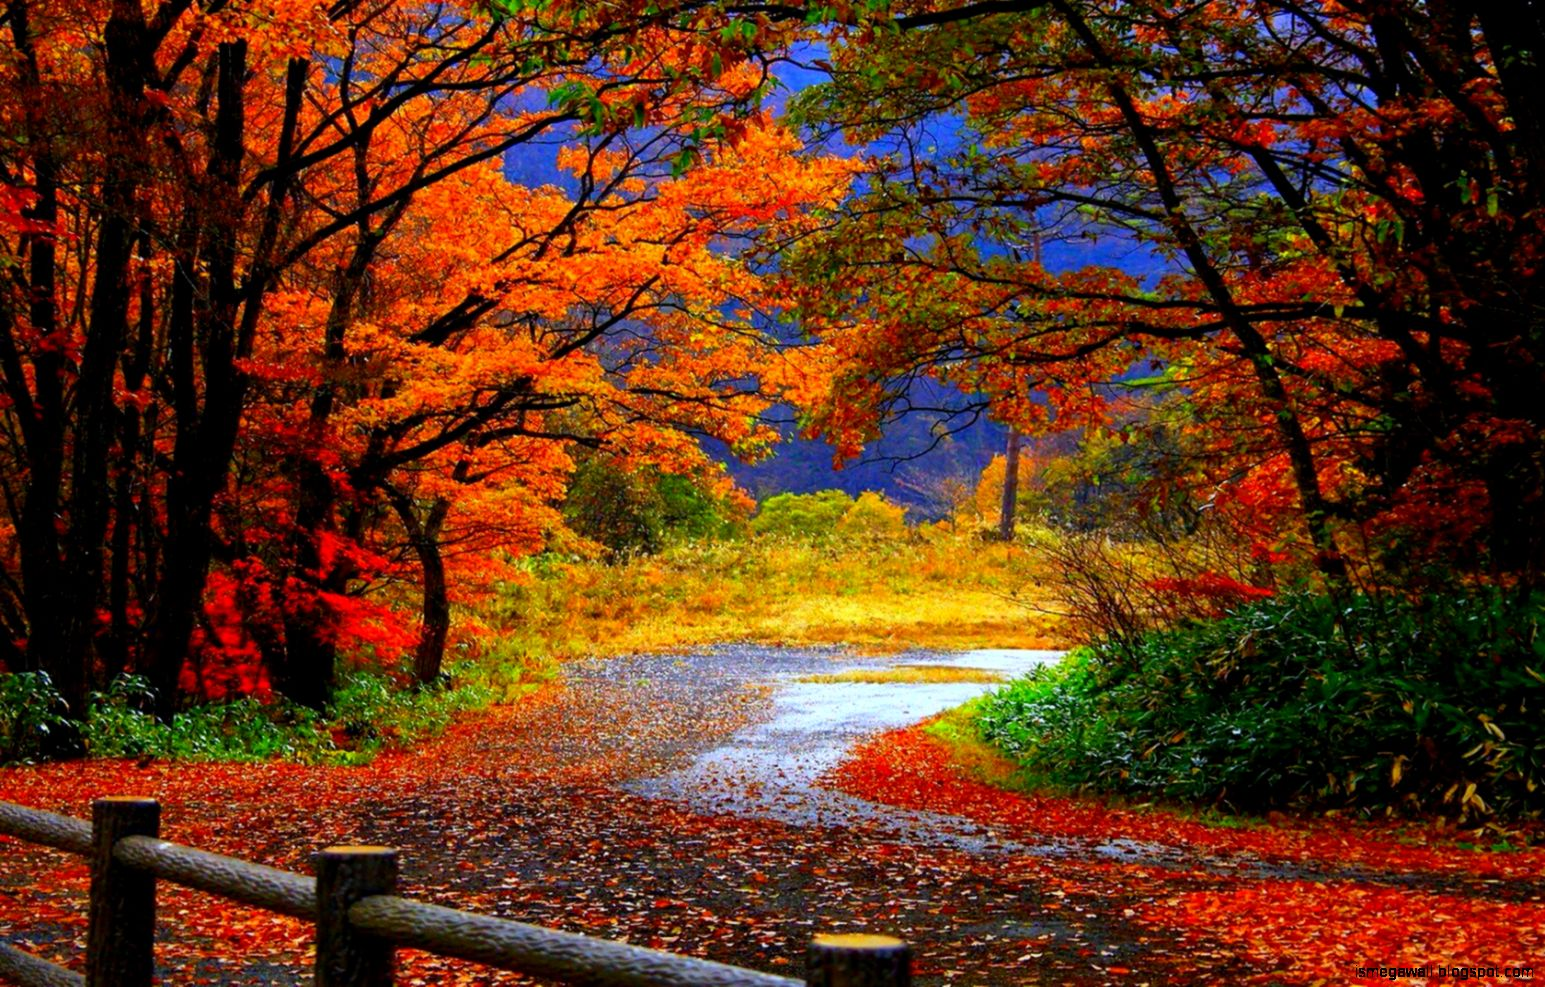 Autumn Wallpaper Hd Widescreen | Mega Wallpapers